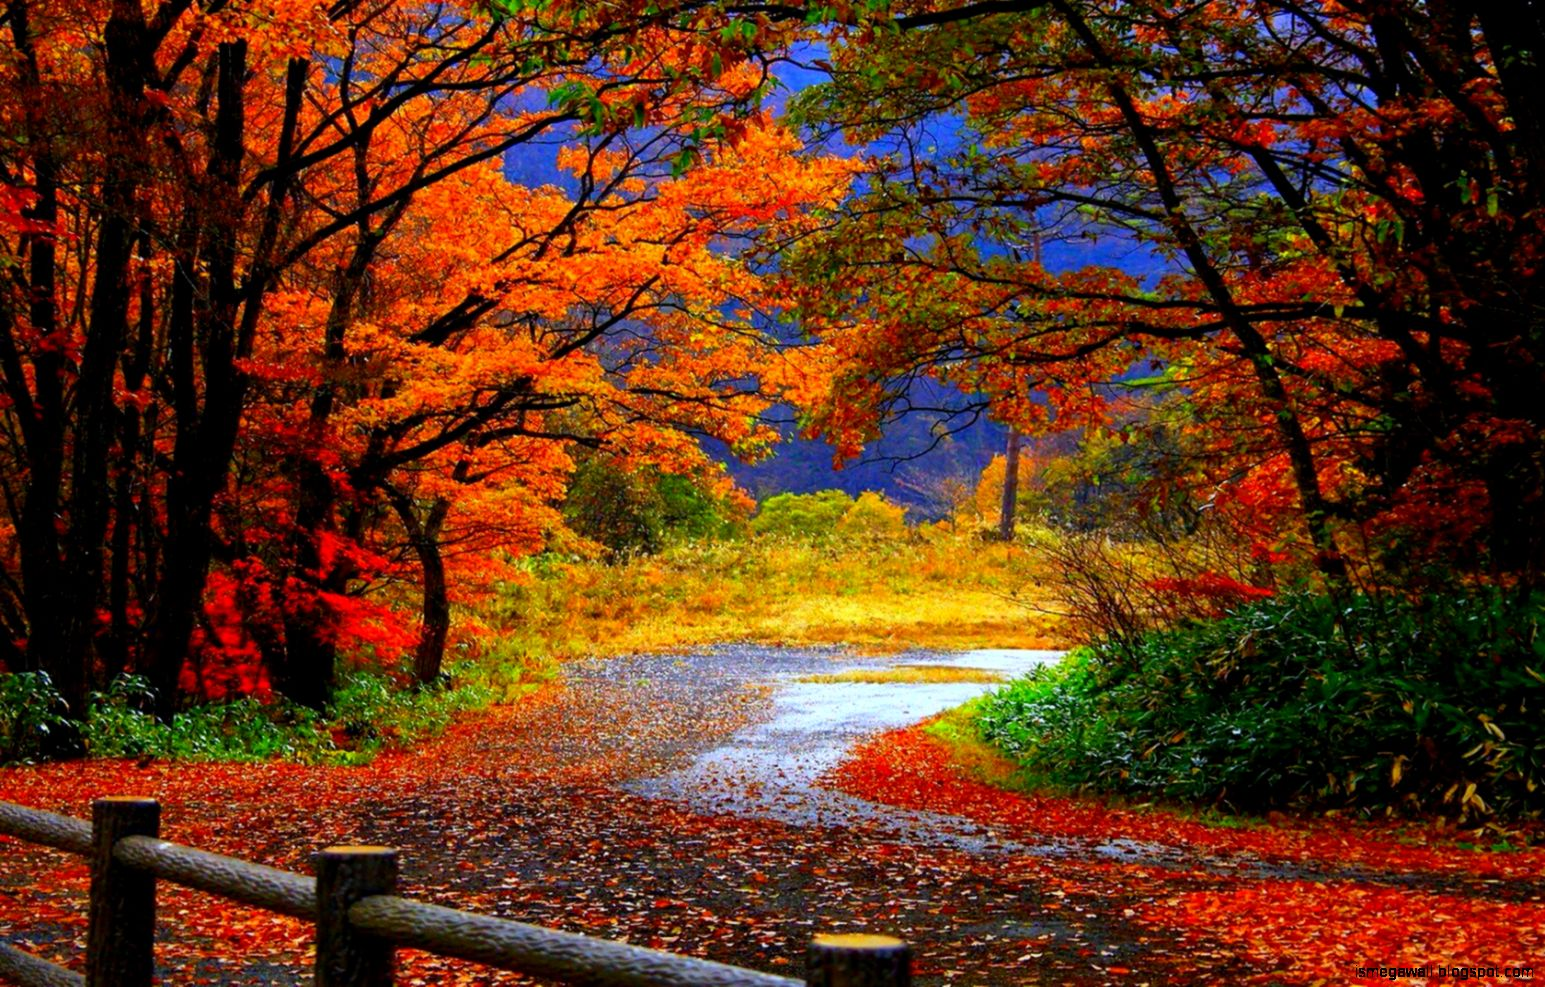 Autumn Wallpaper Hd Widescreen | Mega Wallpapers